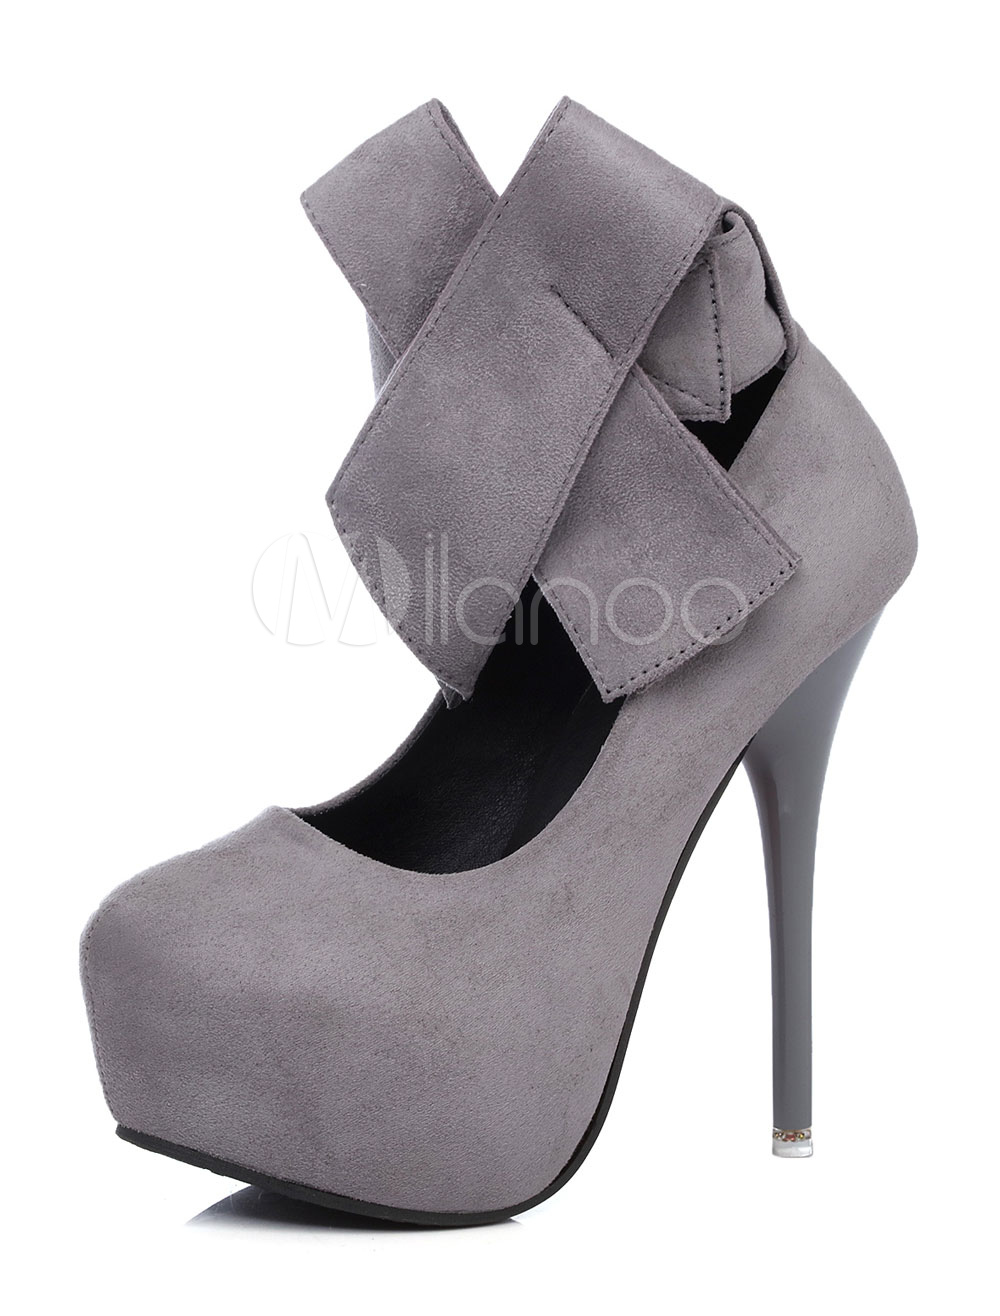 5f1f9c92ab Grey High Heels Platform Suede Round Toe Ankle Strap Bow Stiletto Heel Shoes-No.  1. 20%OFF. Color:Grey